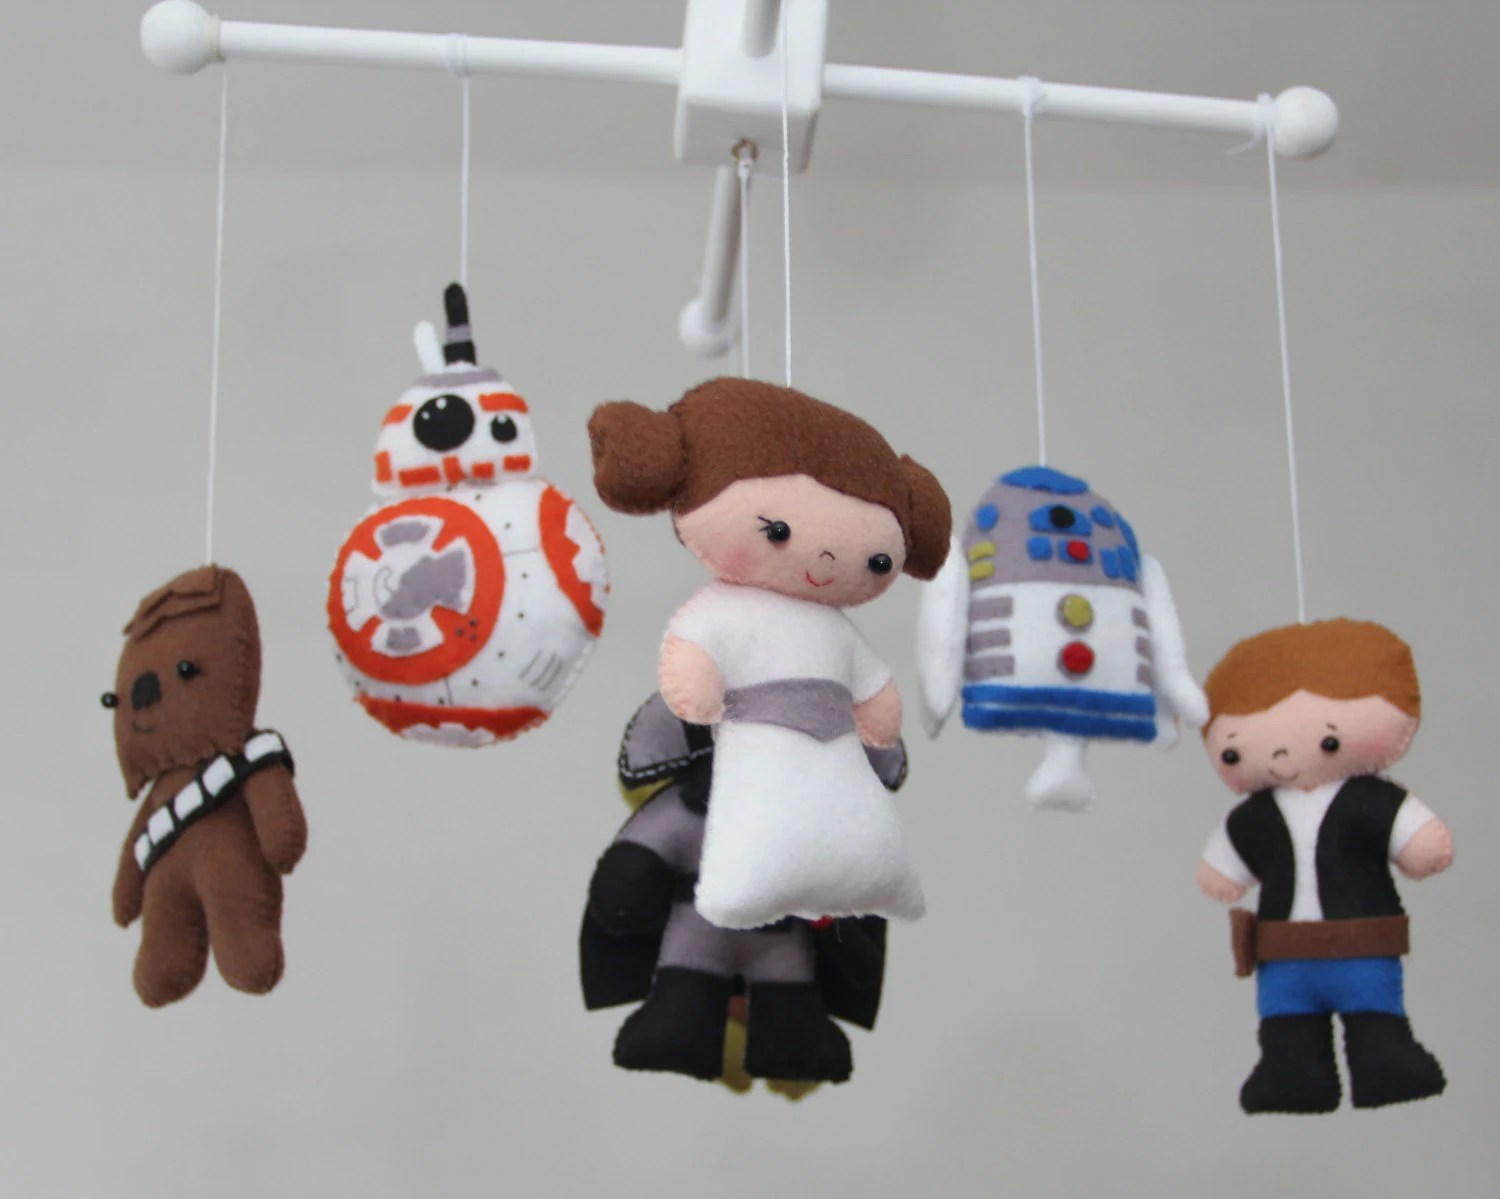 Star Wars Baby Mobile Kindergarten Star Wars Mobile Darth